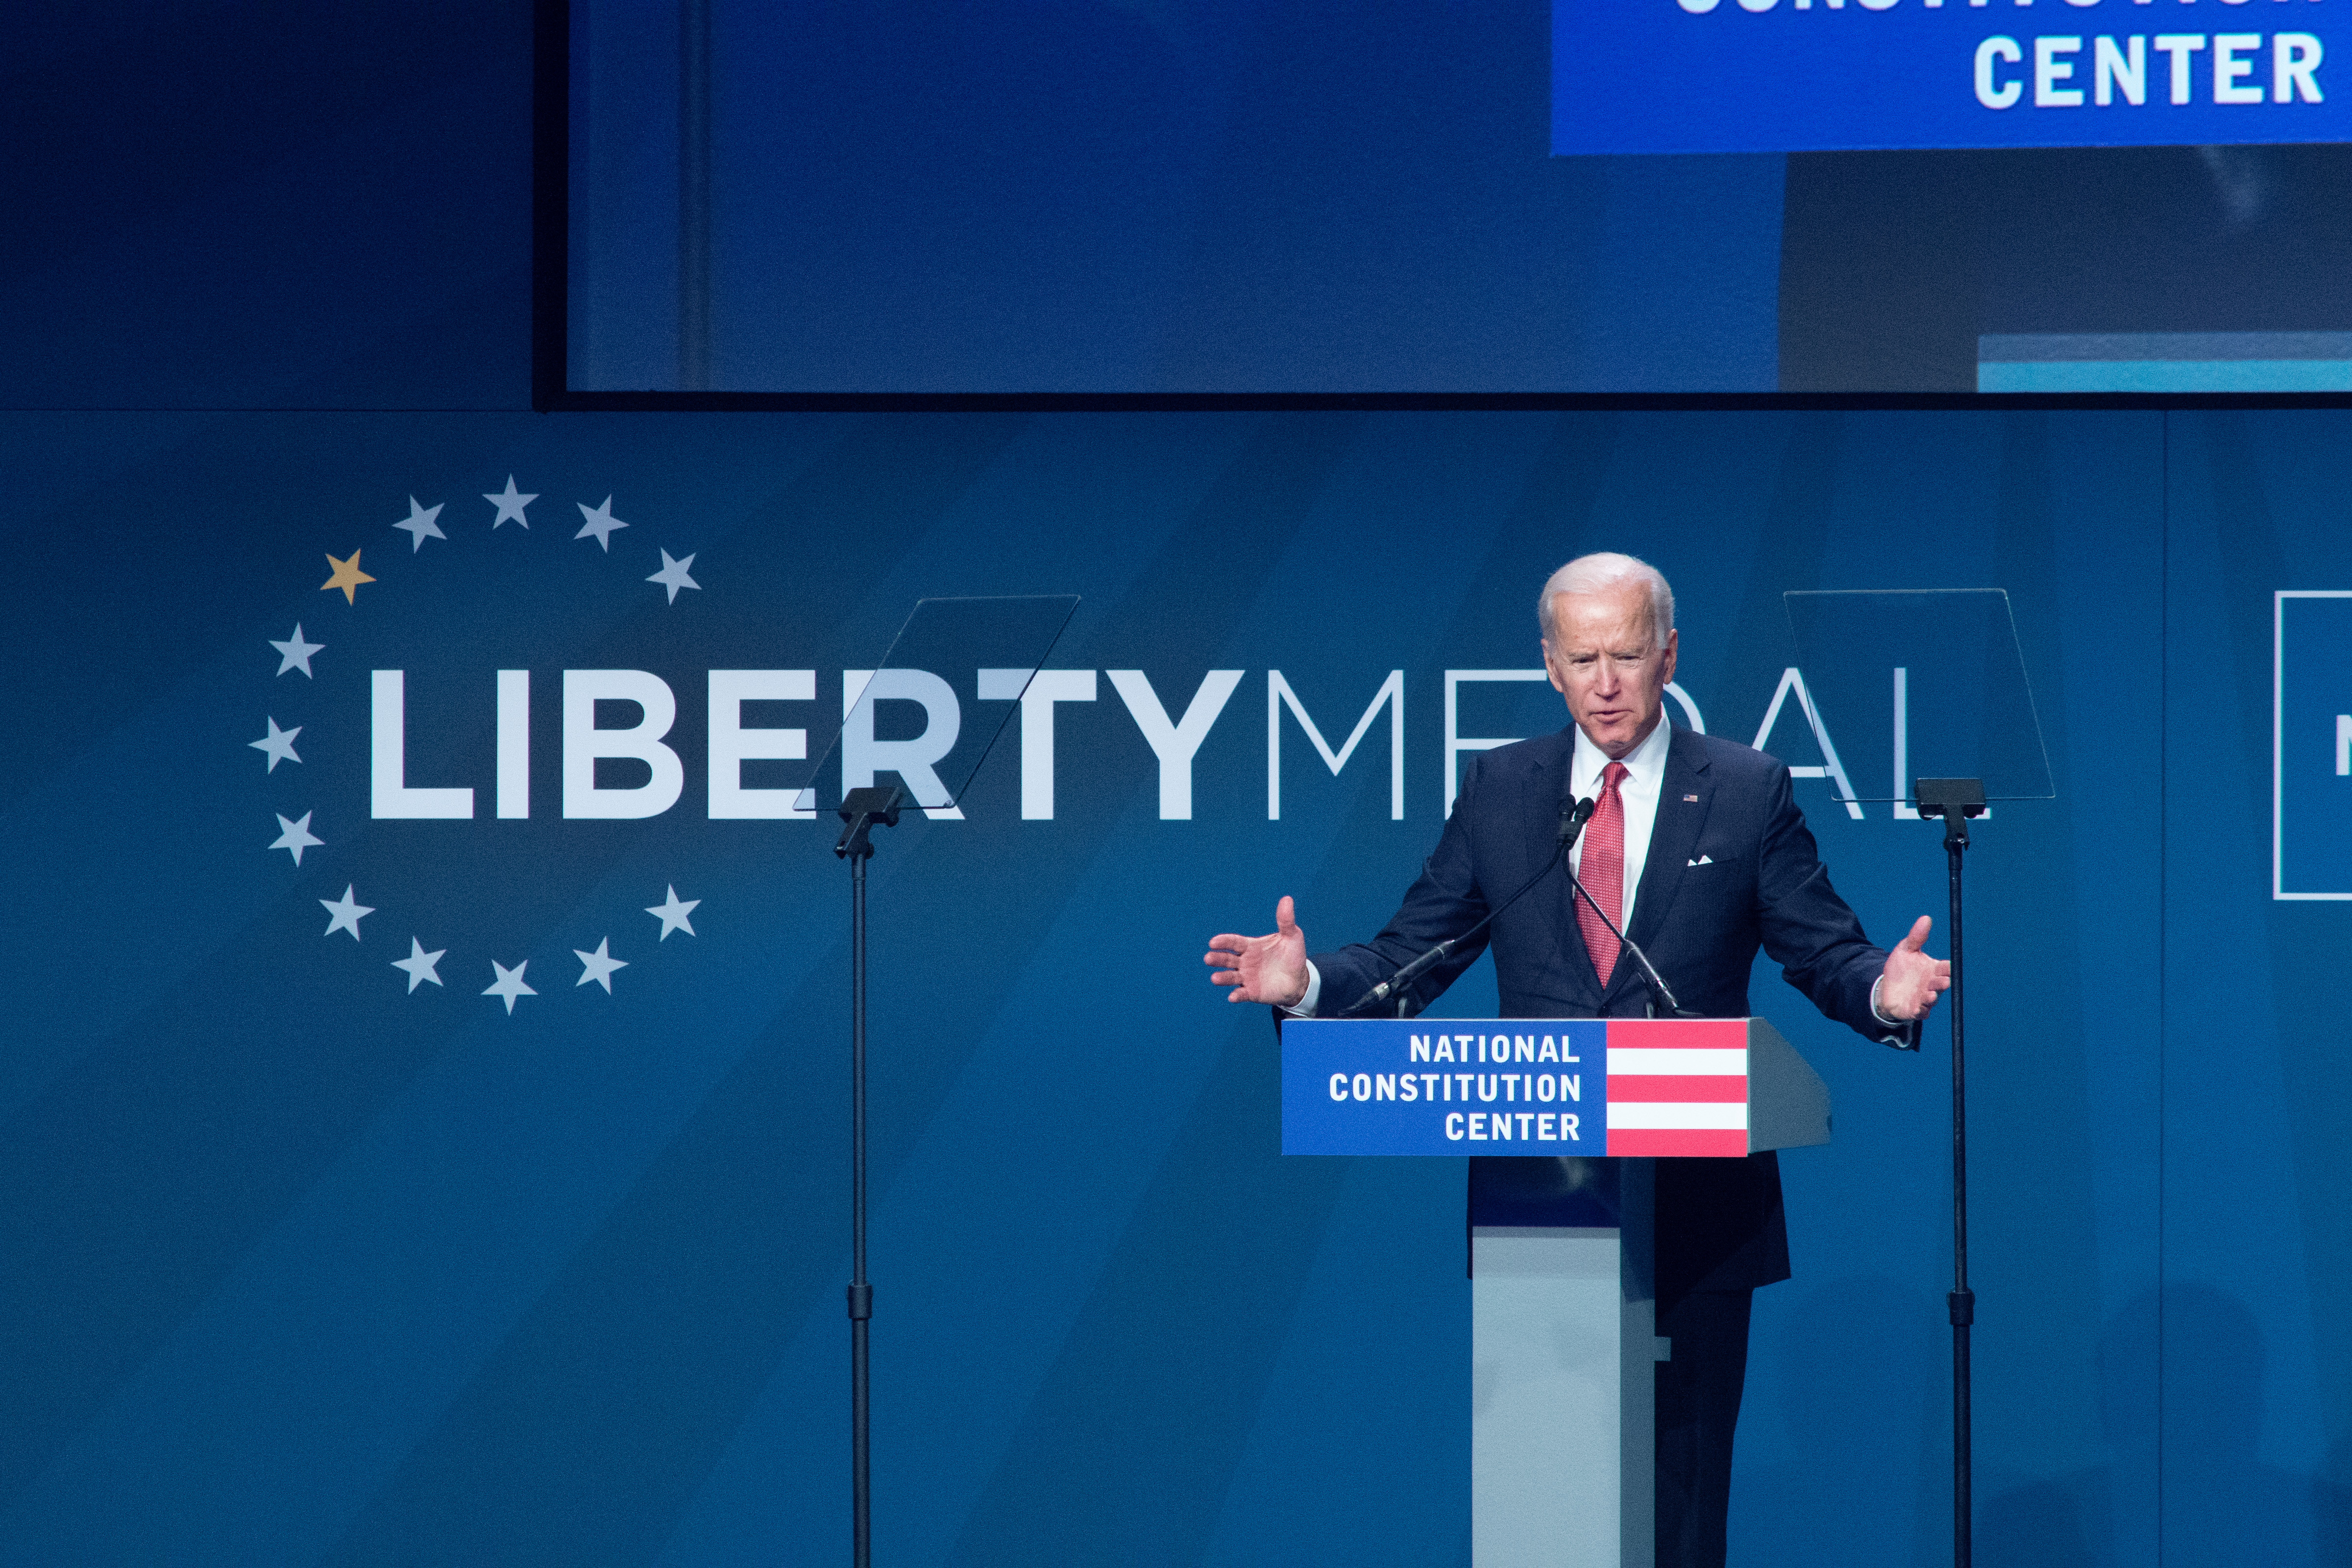 Former Vice President Joe Biden introduces former US President George W. Bush and Laura Bush to receive the 2018 Liberty Medal at The National Constitution Center on November 11, 2018 in Philadelphia, Pennsylvania. (William Thomas Cain/Getty Images)